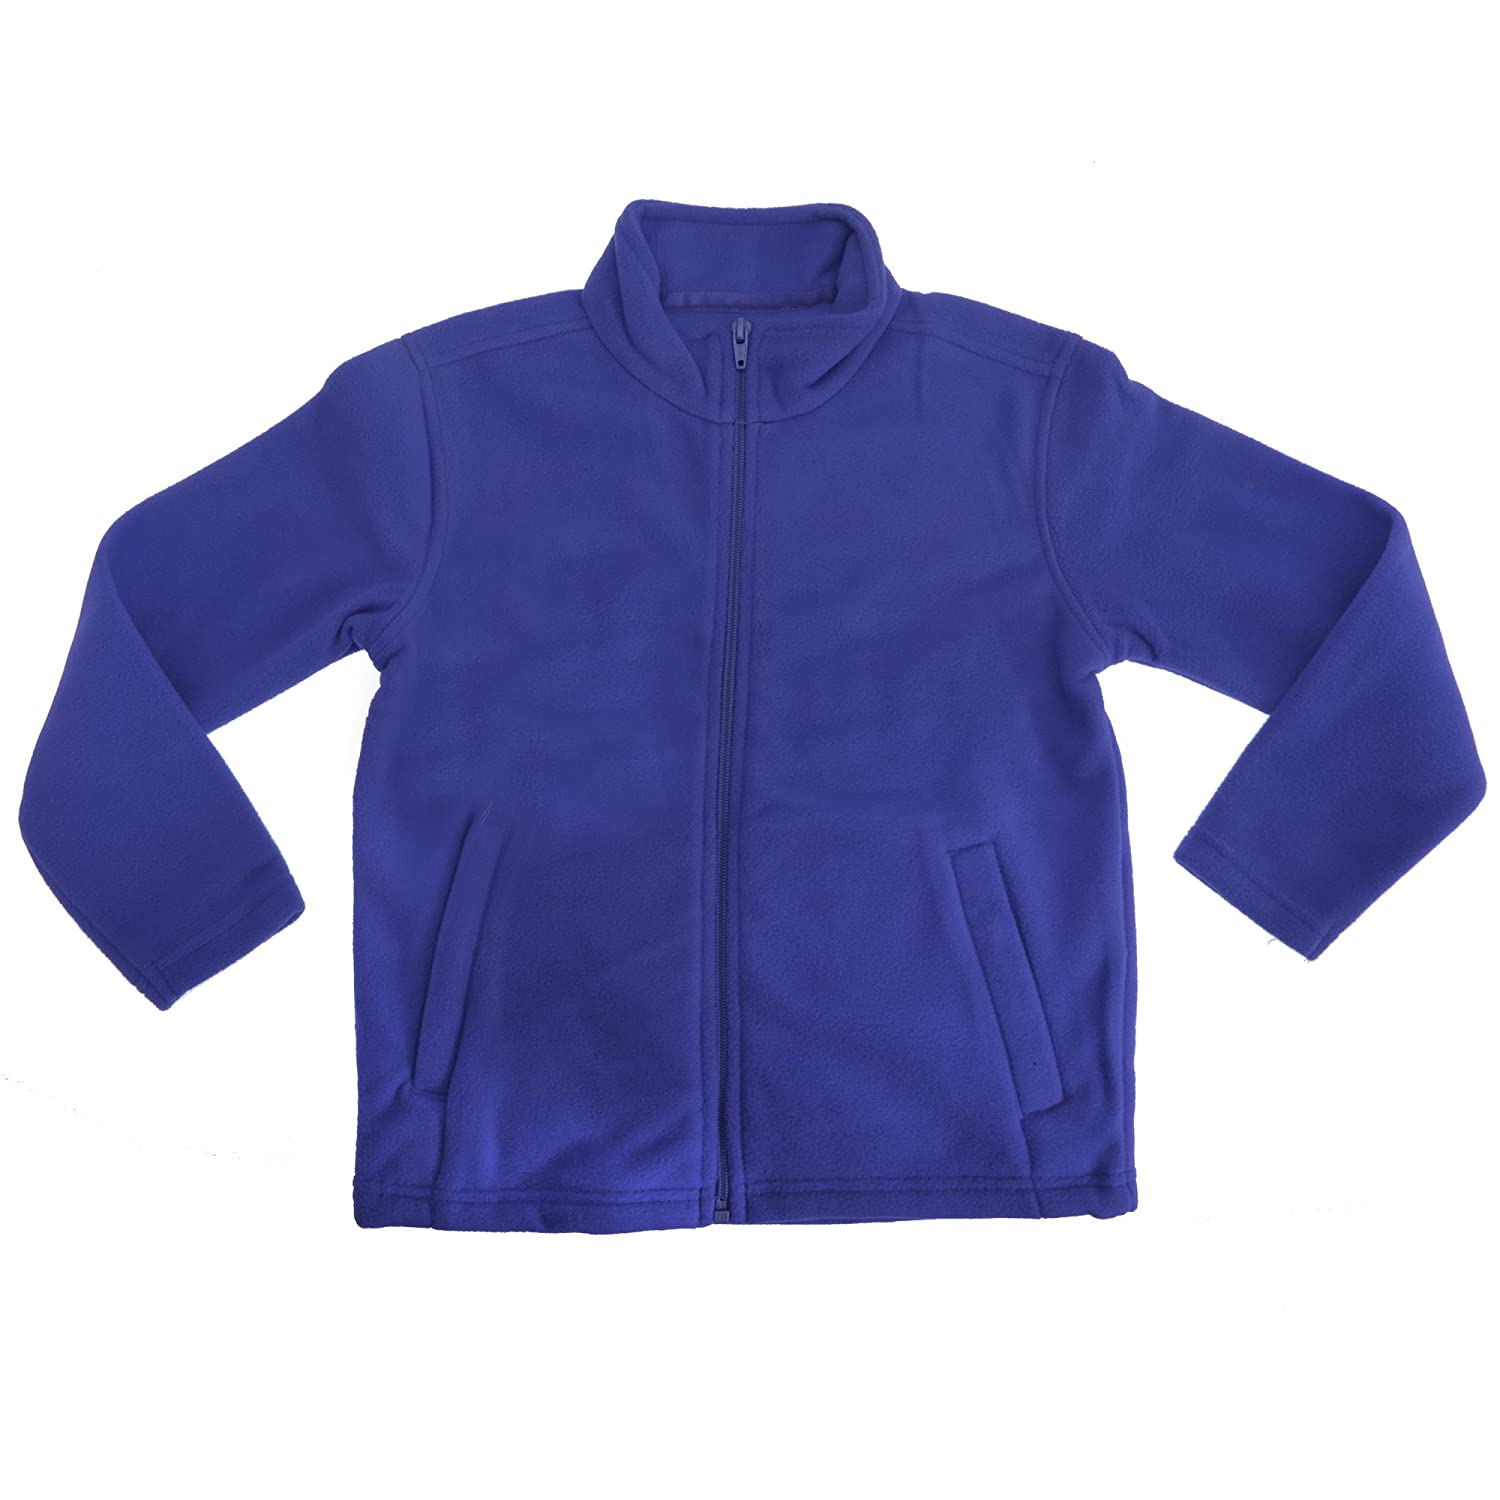 Regatta Kids/Childrens Unisex Brigade Fleece Jacket